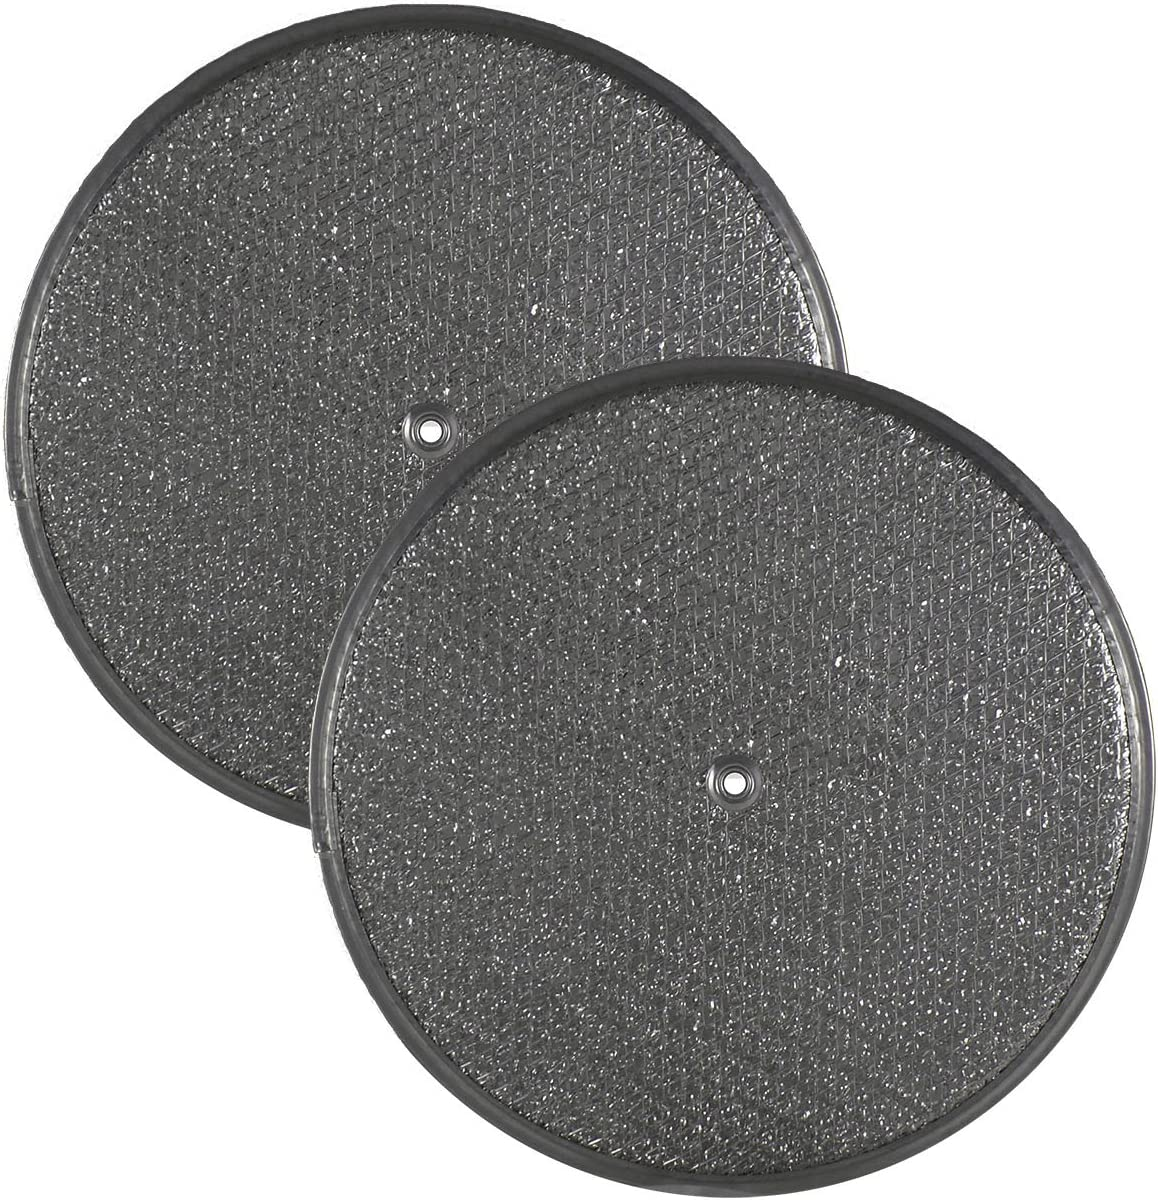 2 PACK Air Filter Factory 10-1/2 Round x 3/32 With Center Hole Range Hood Aluminum Grease Filters